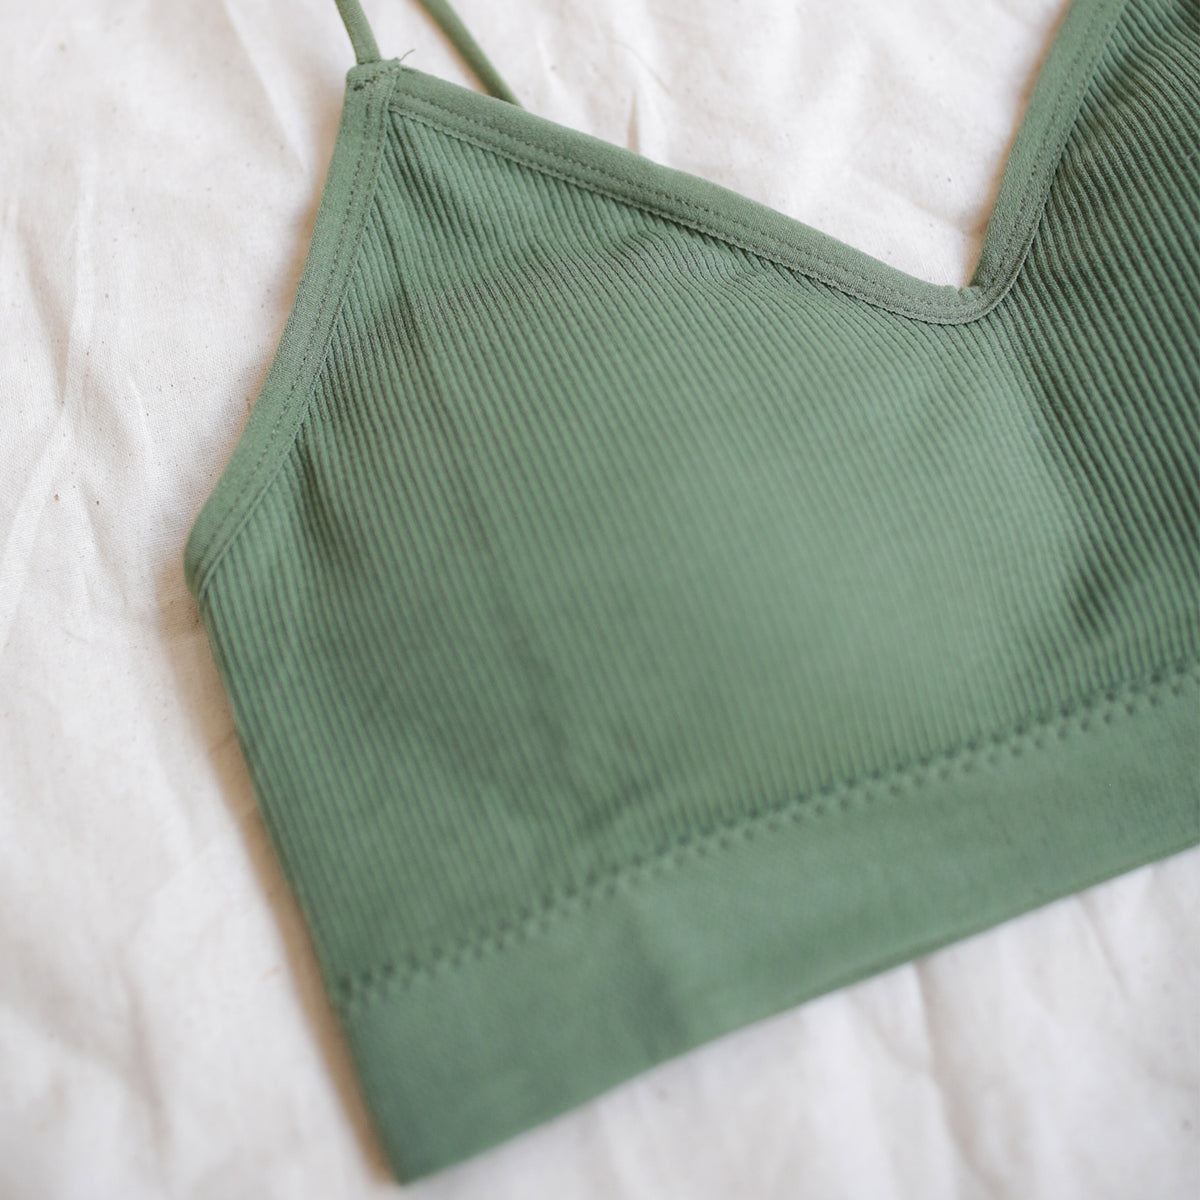 Second Skin Bralet (Olive)